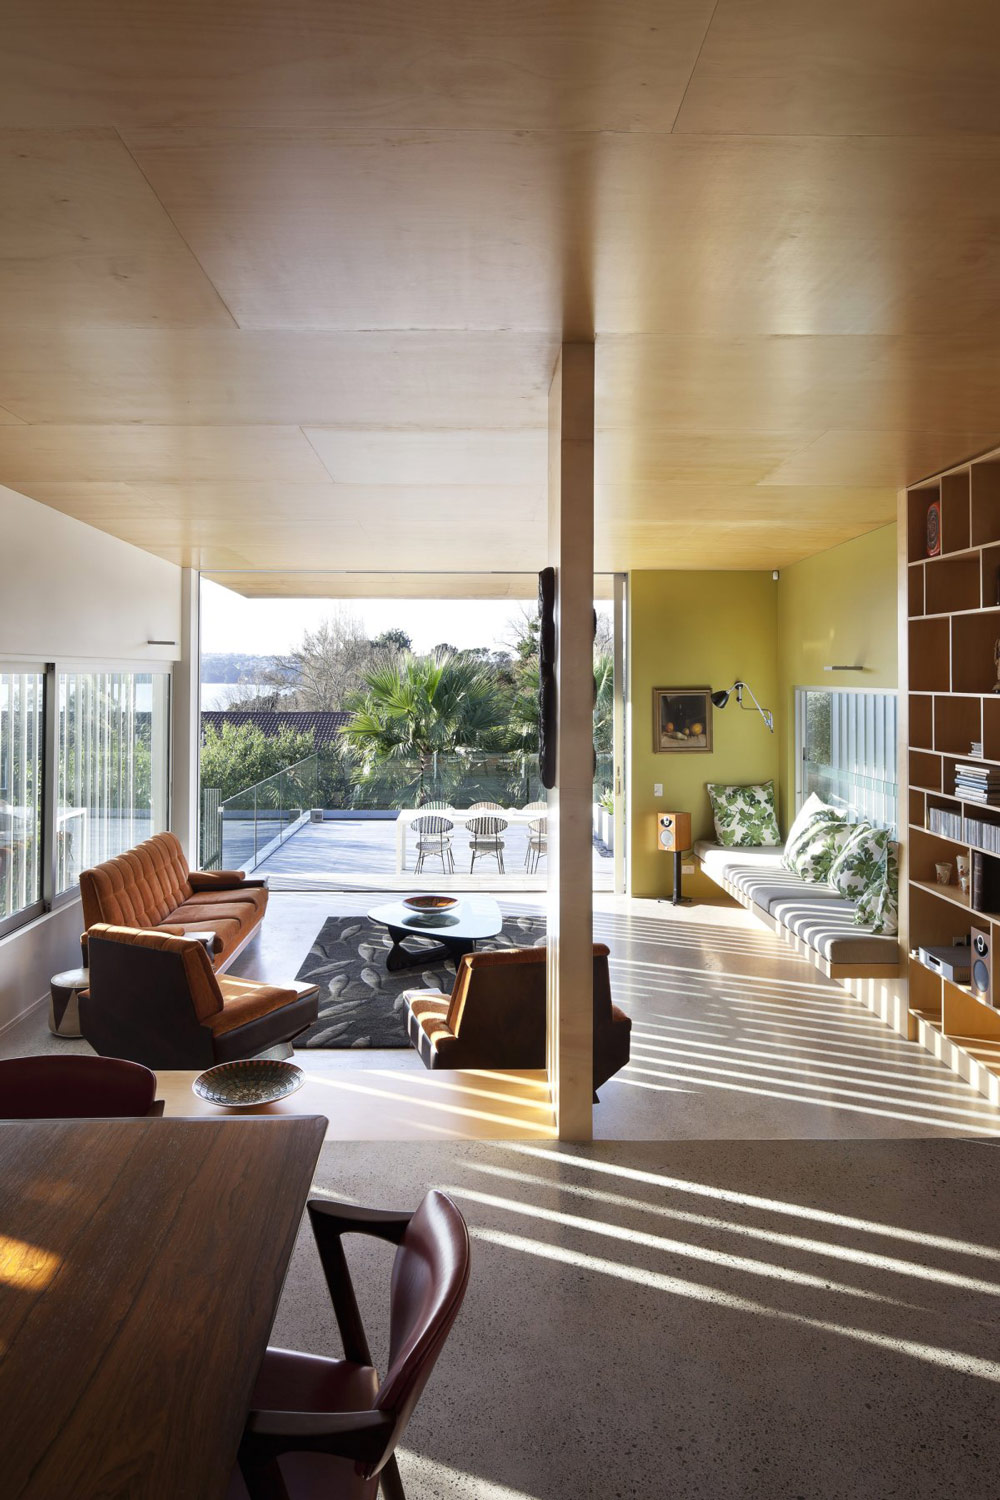 195060s Inspired Home in Auckland New Zealand